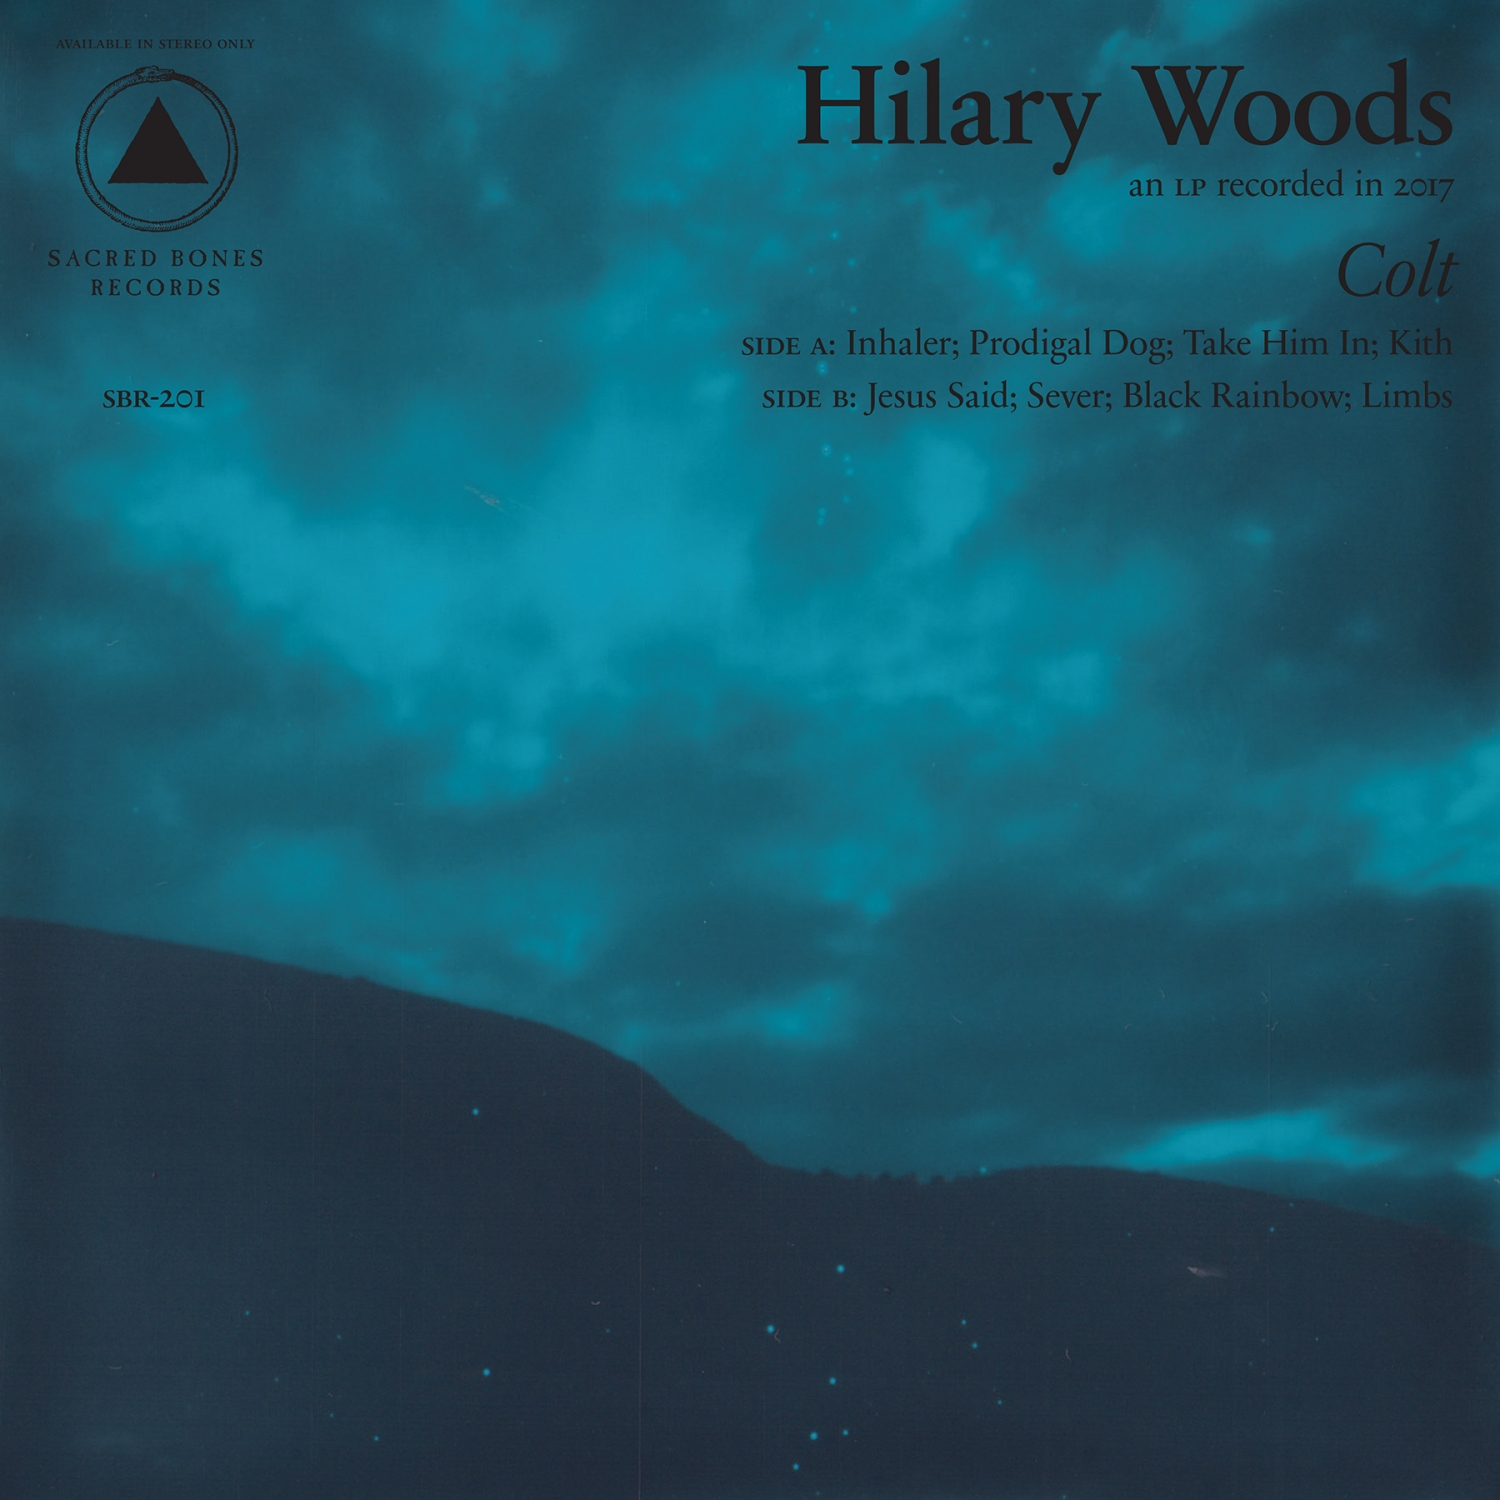 hilary woods would not be out of place on the twin peaks soundtrack less fey sounding than the cocteau twins yet it occupies a similar sonic space as an